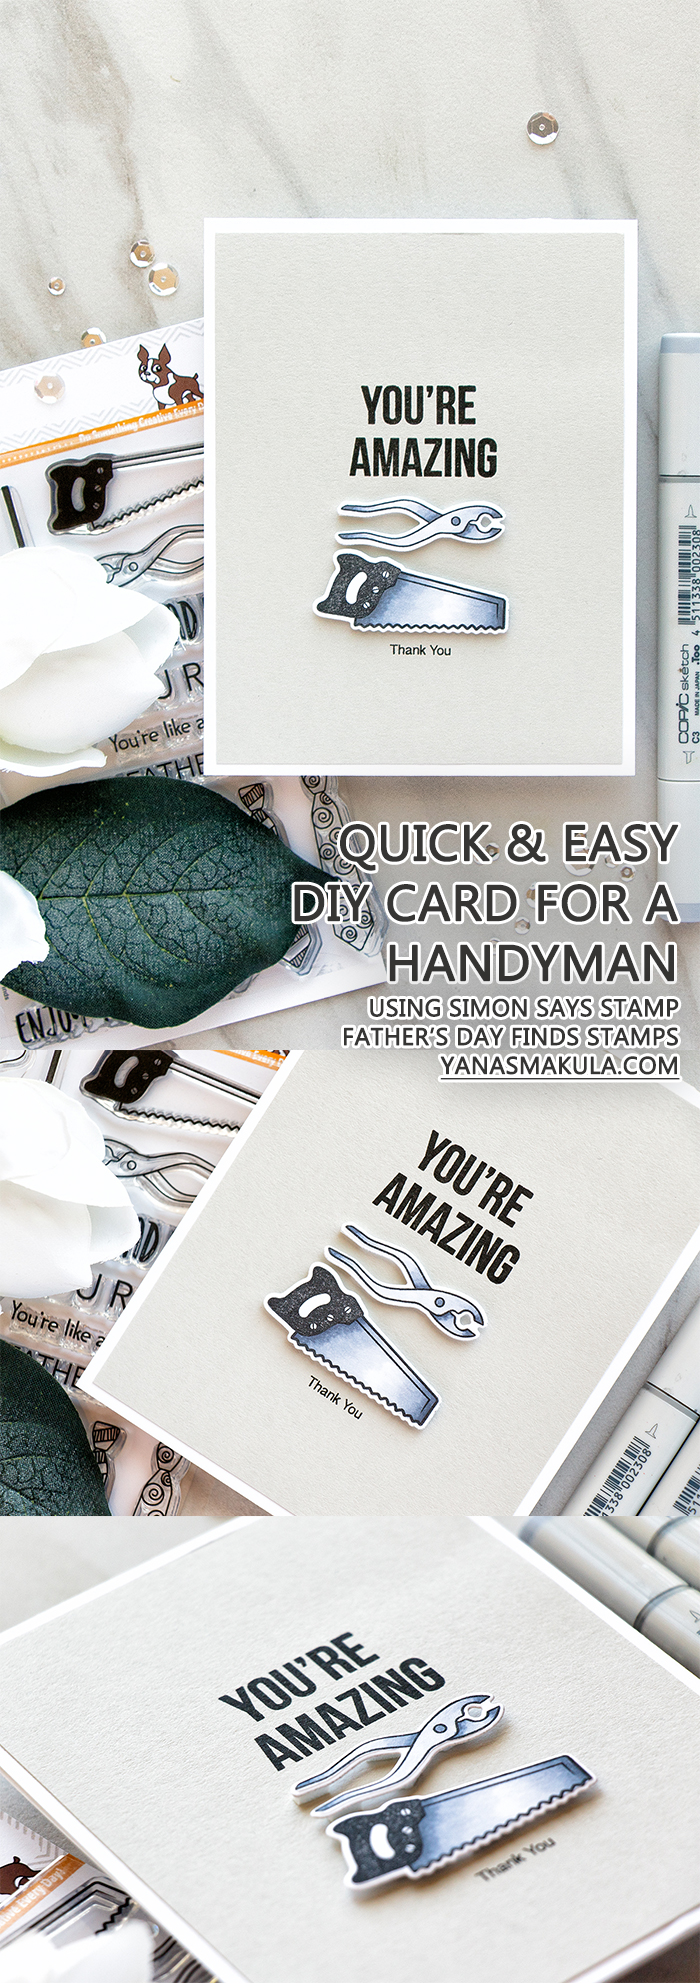 Simon Says Stamp | Quick & Easy Thank You Card For a Handyman by Yana Smakula. Using Simon Says Clear Stamps FATHER'S DAY FINDS SSS101624 Dads And Grads